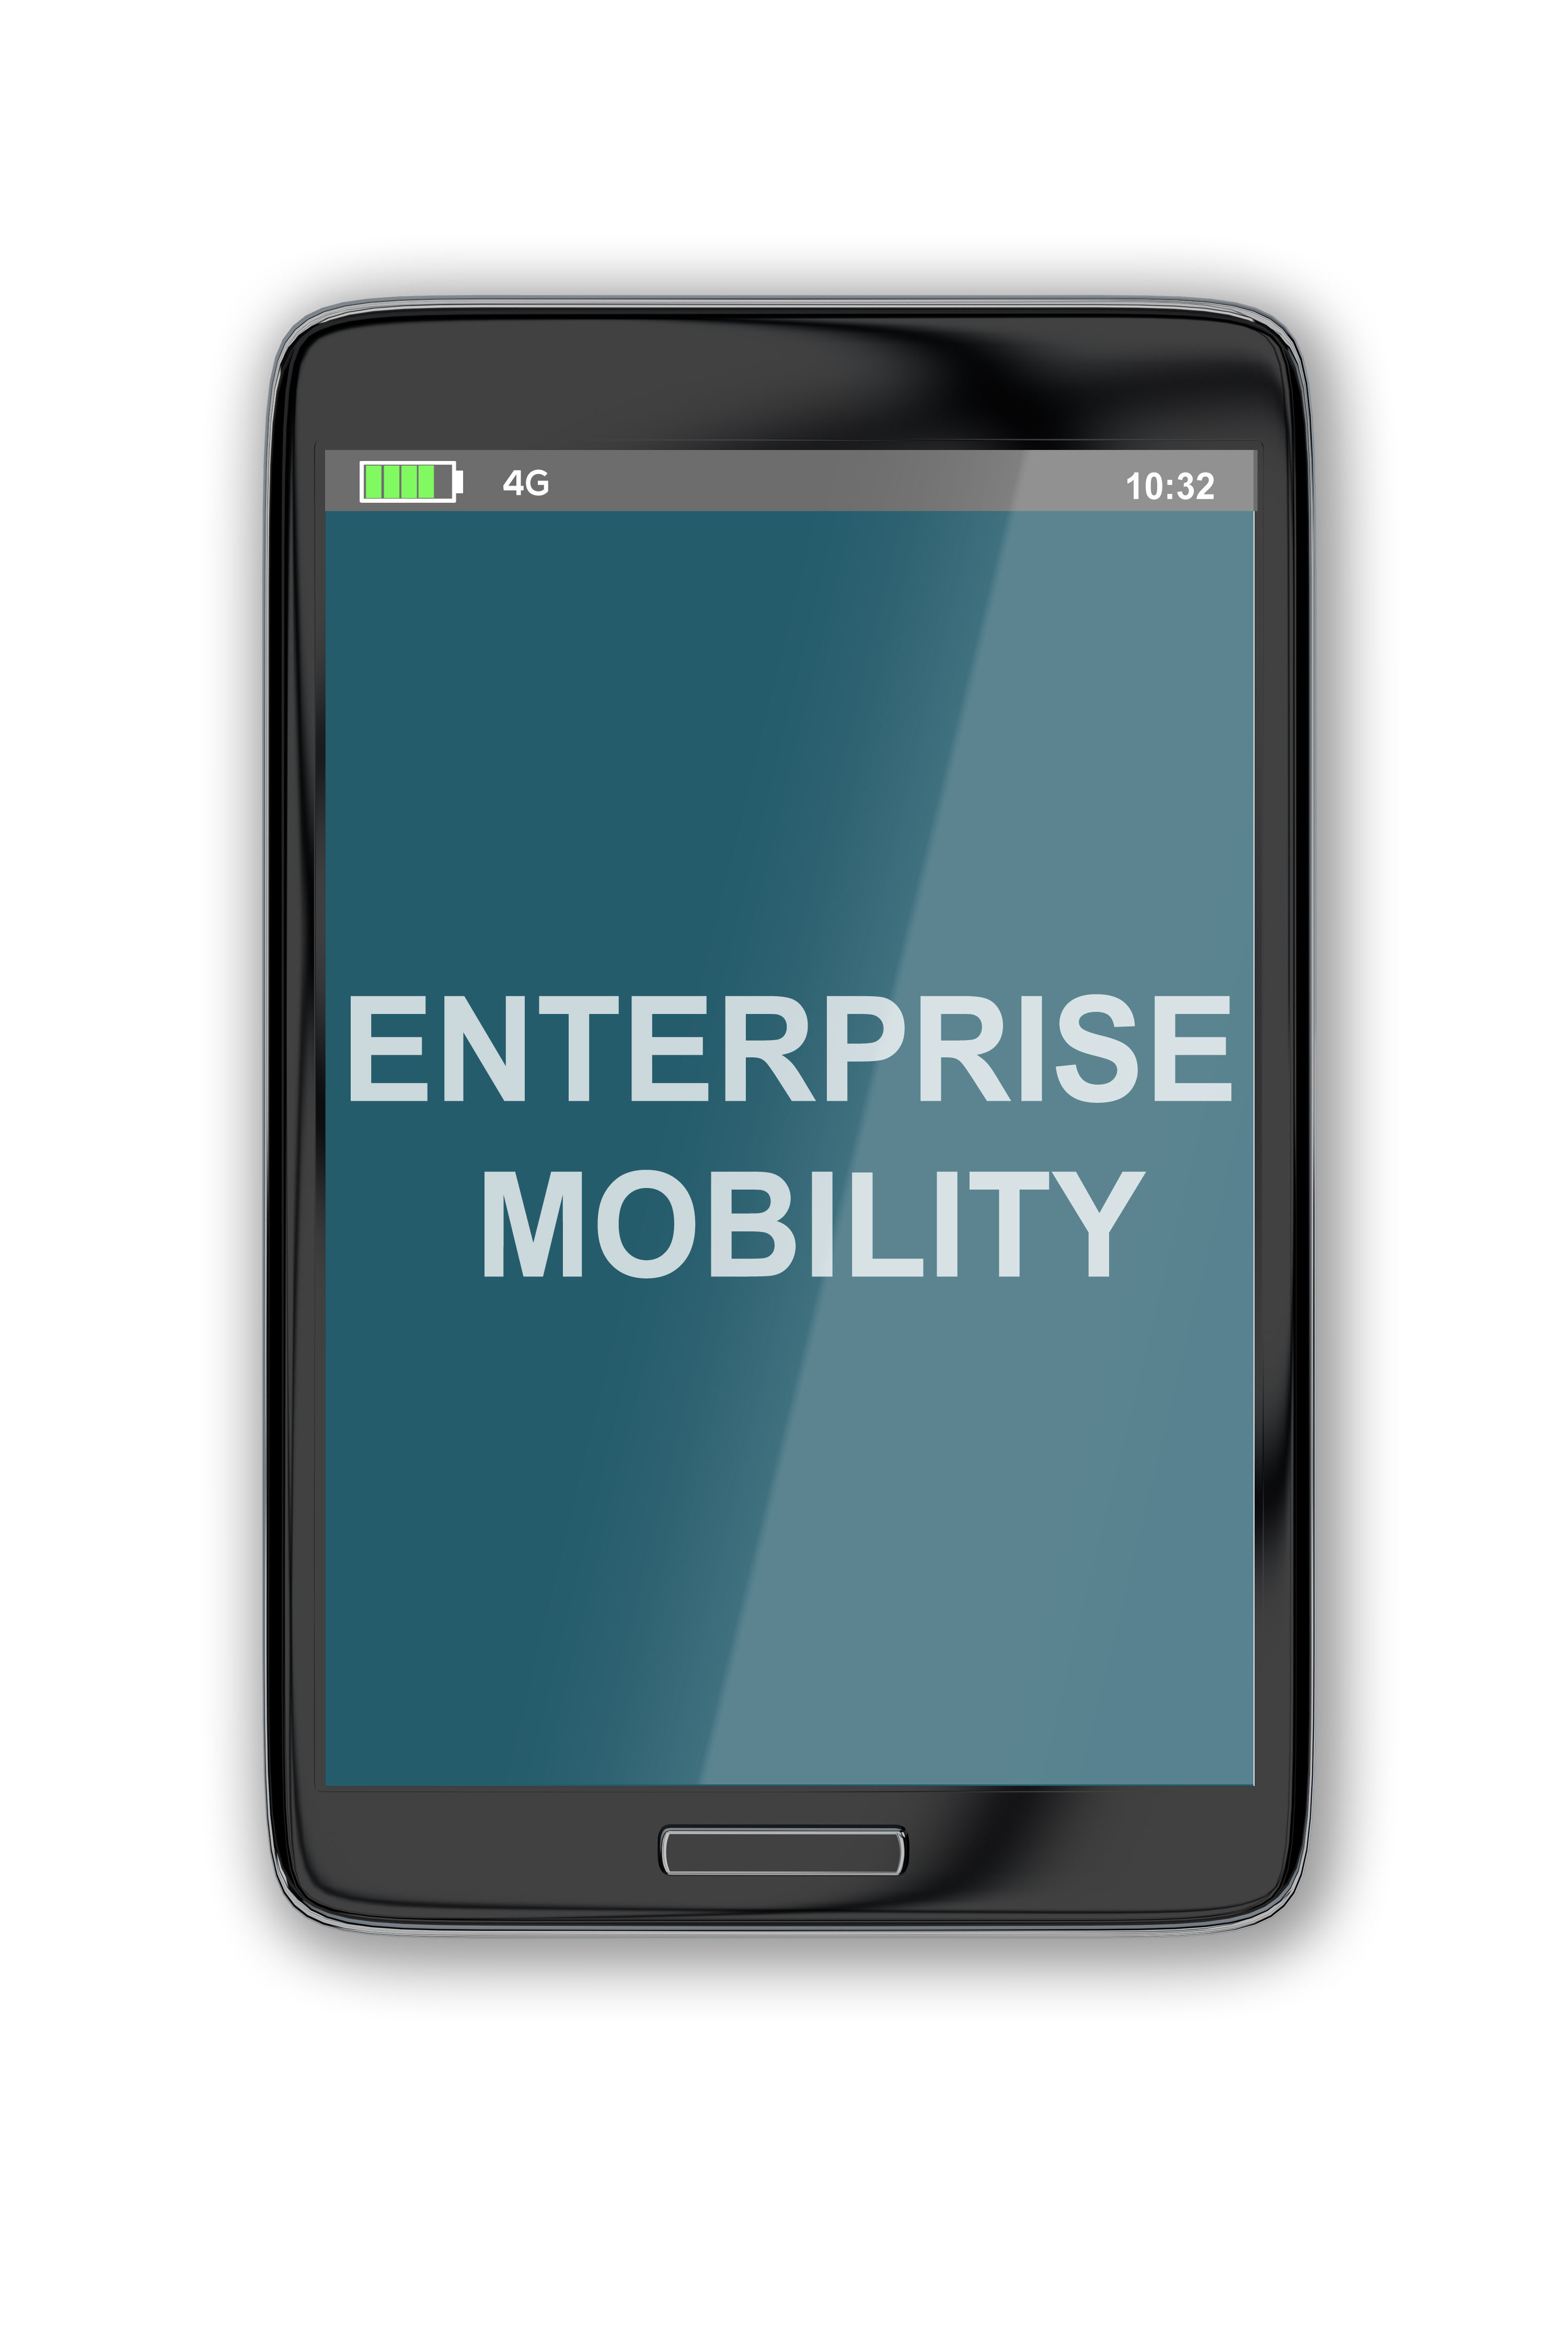 Mobile Device with Enterprise Mobility Text on Screen